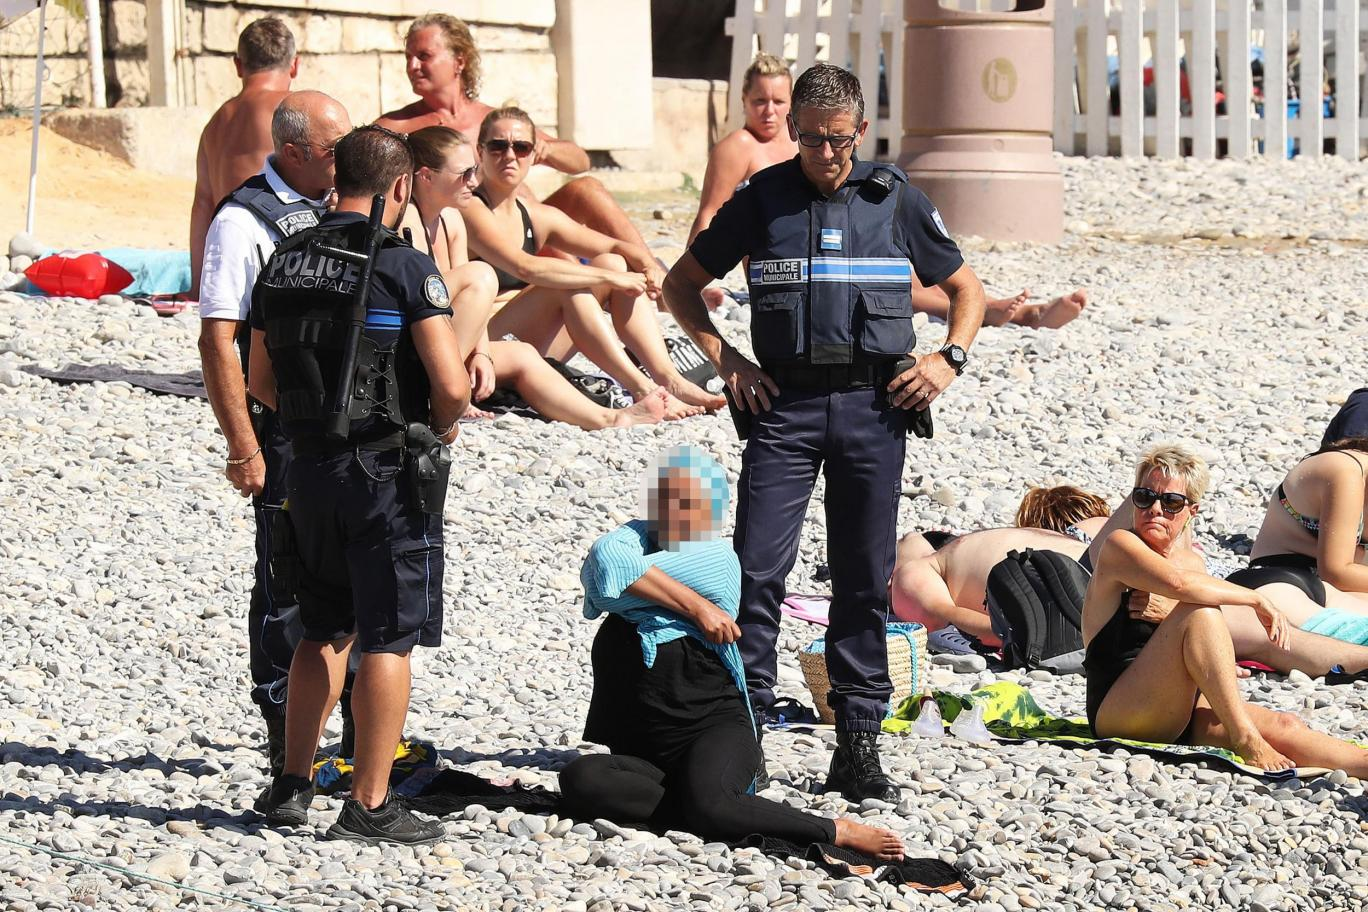 Woman being undressed by police in public in Cannes.Credit: The Independent